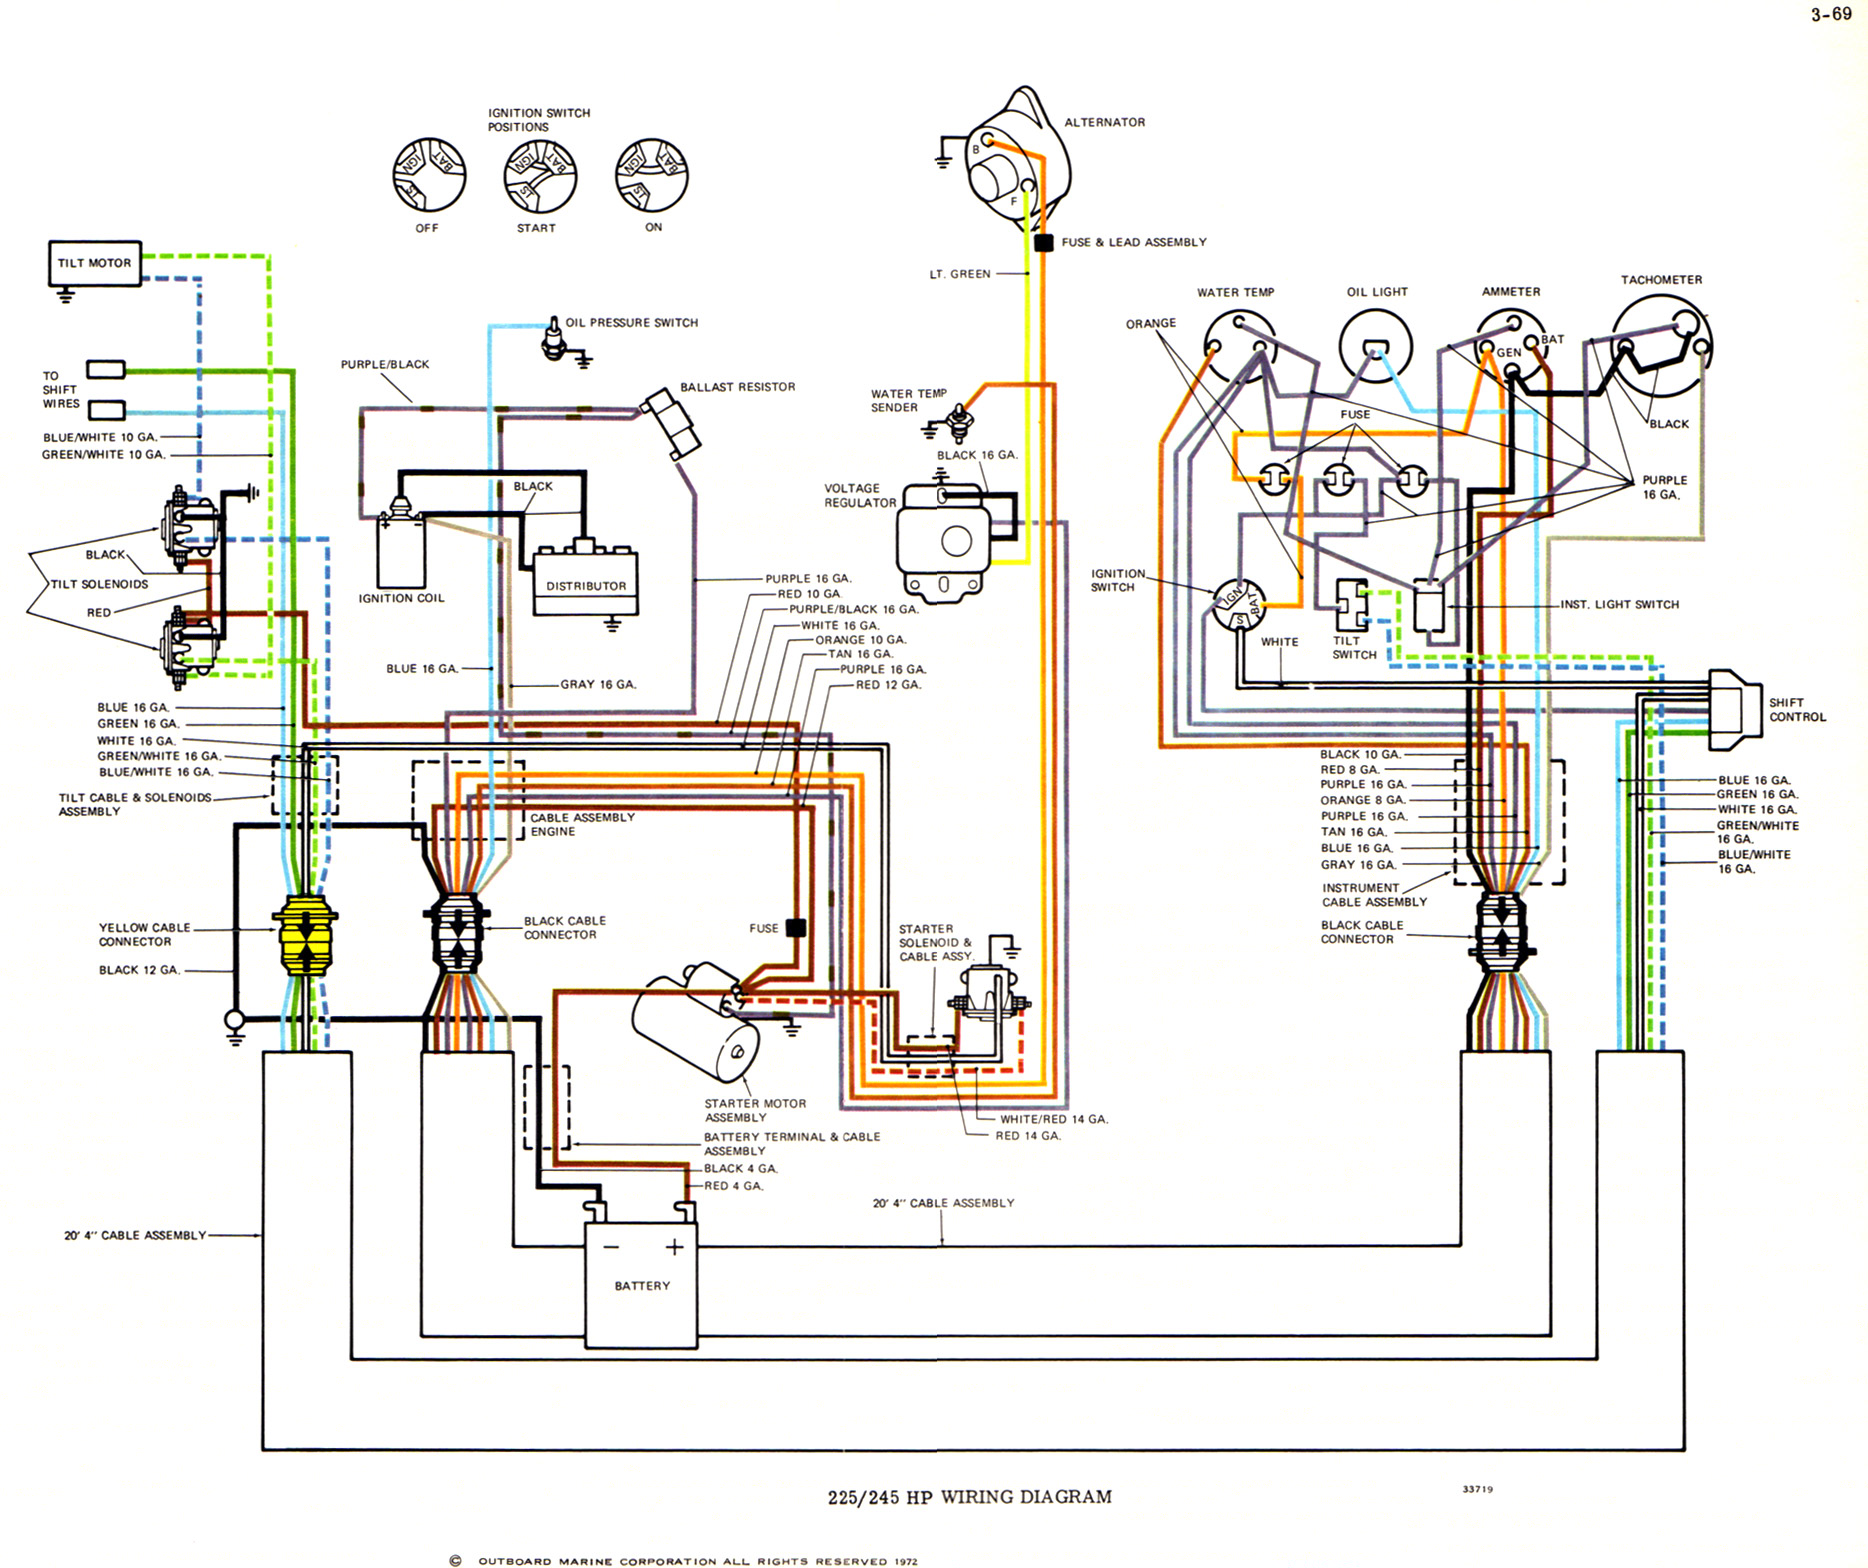 Omc Schematic Diagrams Starting Know About Wiring Diagram \u2022 Cat Wire  Diagram Omc Wire Diagram